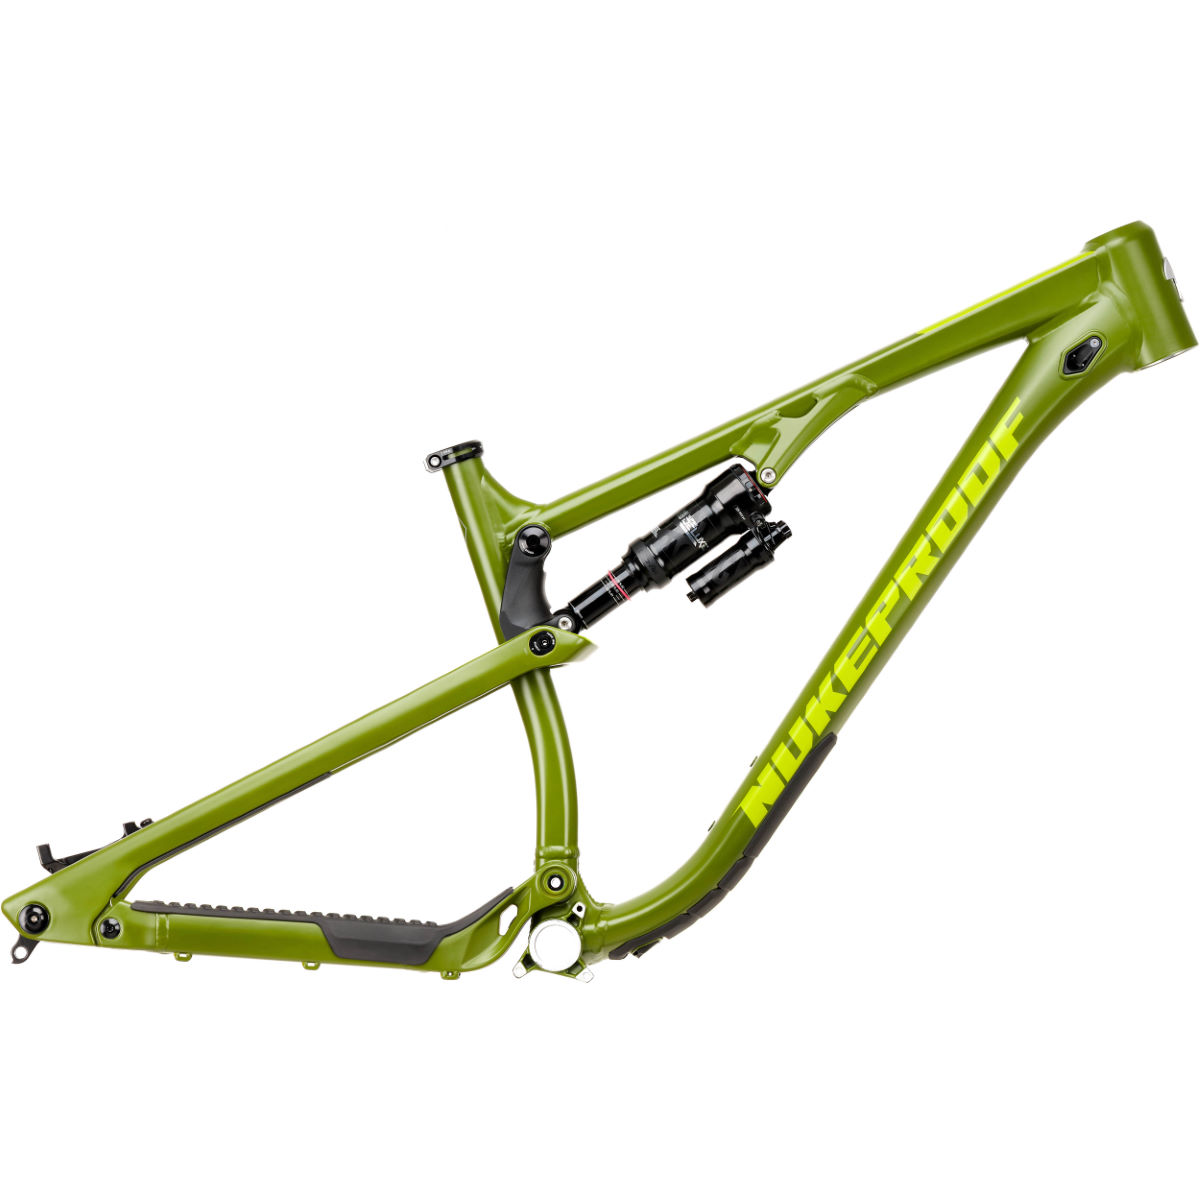 Nukeproof Nukeproof Reactor 275 Alloy Mountain Bike Frame (2020)   Full Sus Mountain Bike Frames